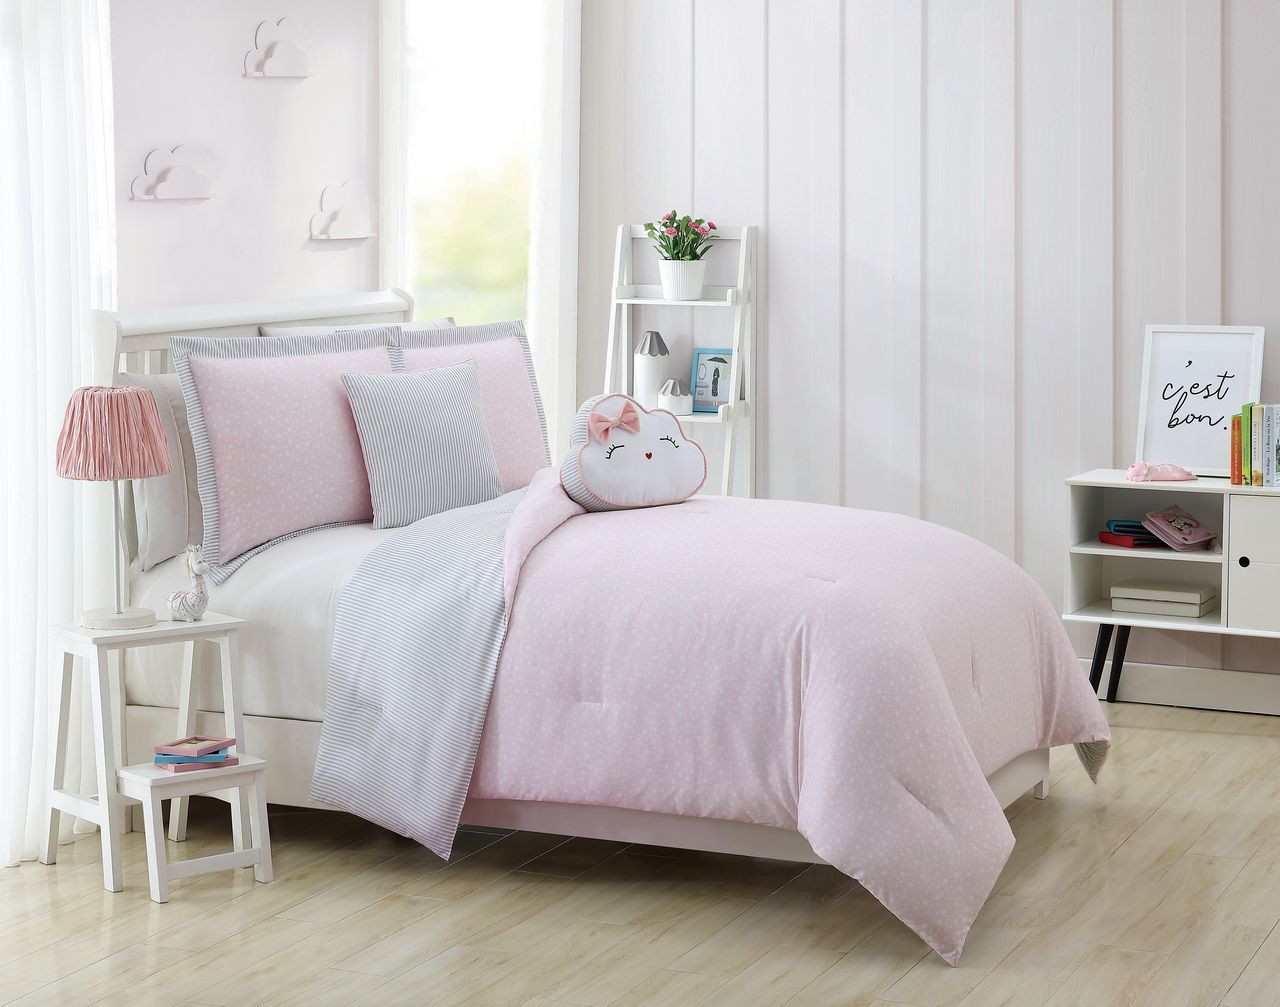 queen zamella set sets white peace comforter